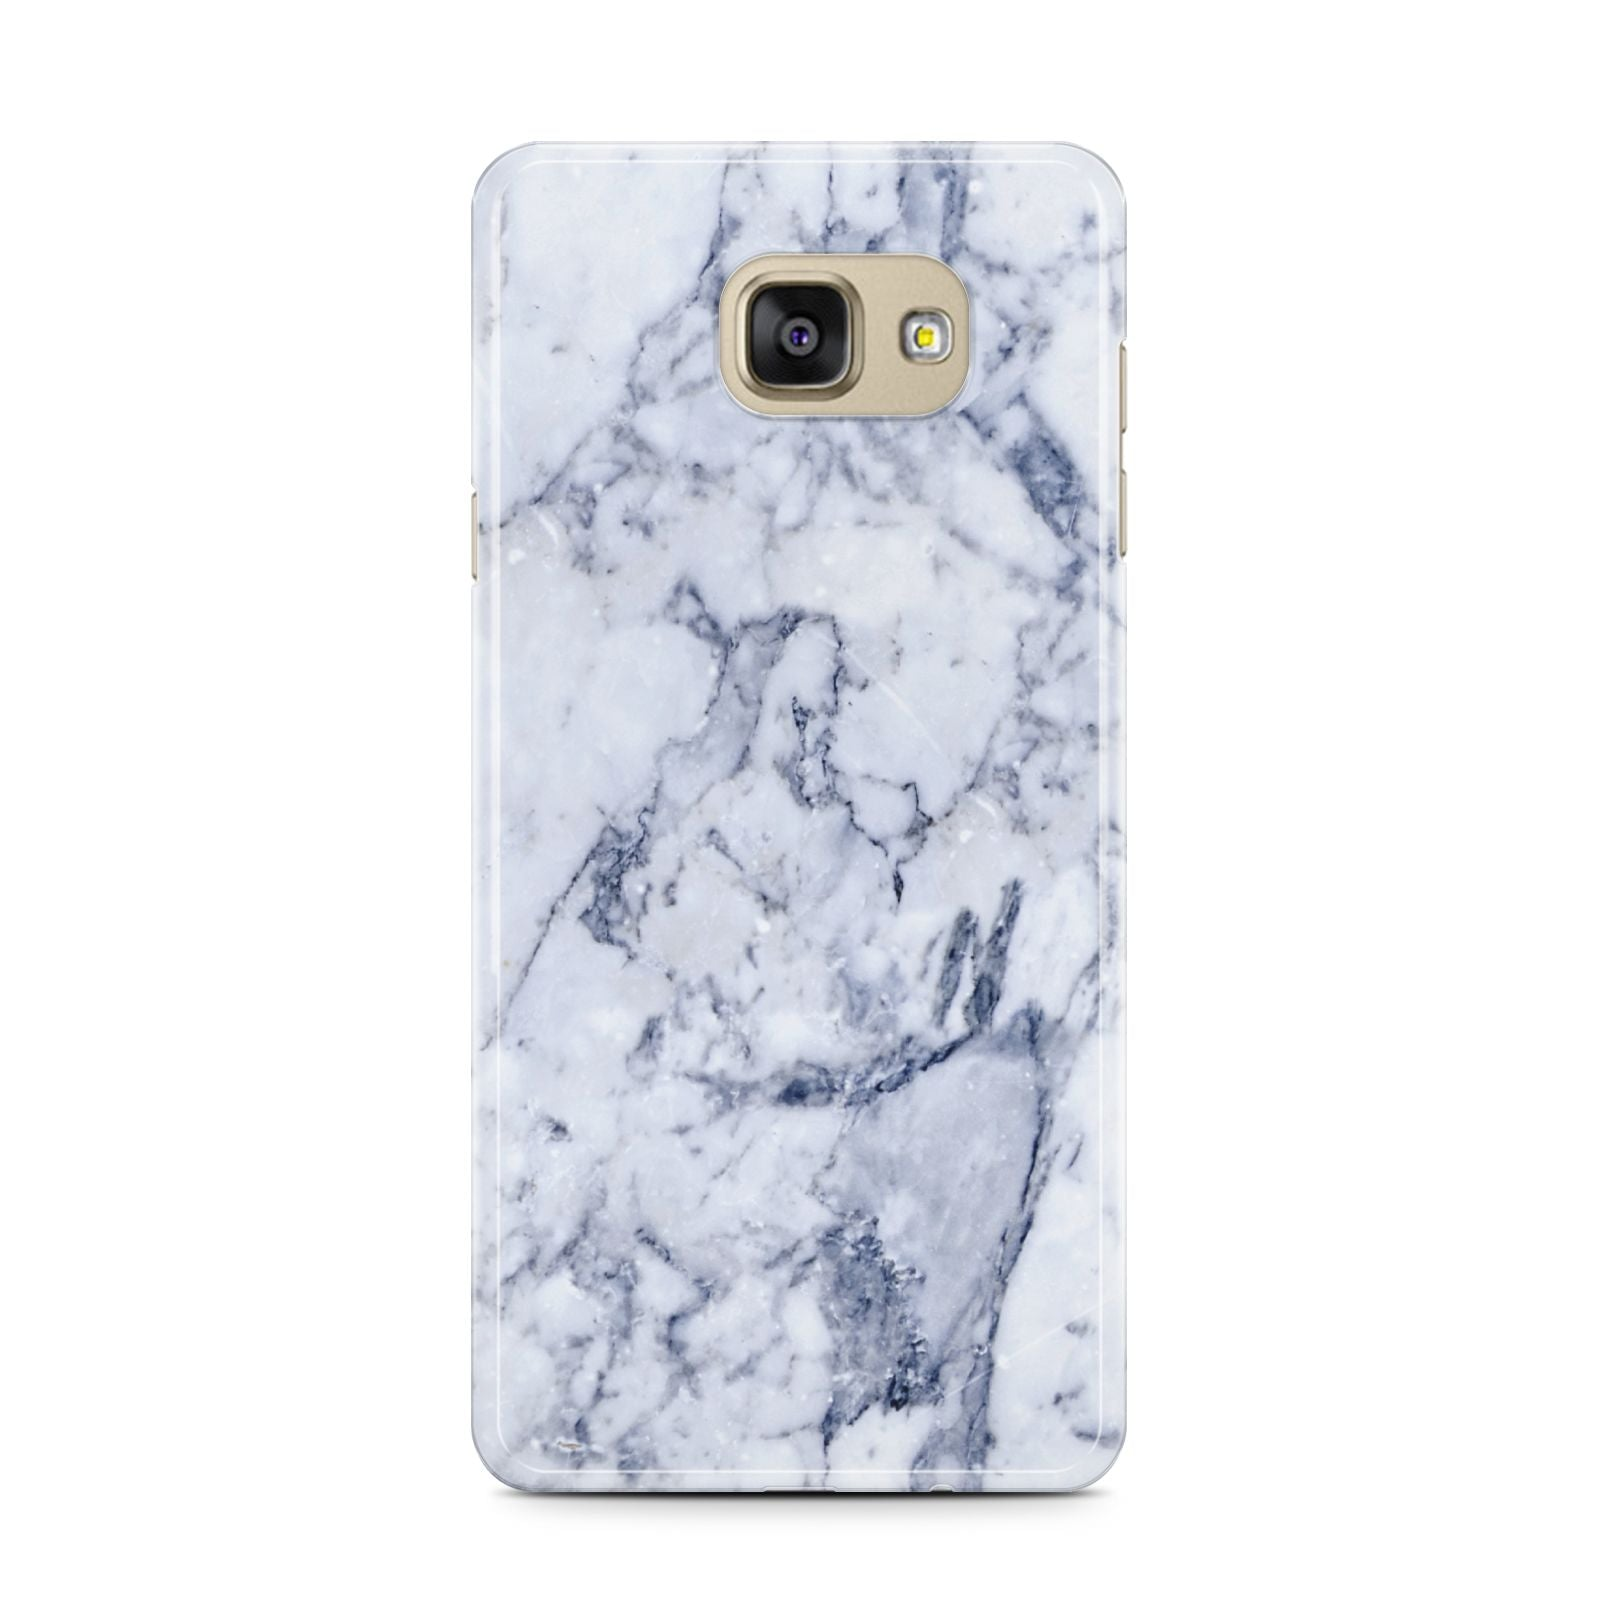 Faux Marble Blue Grey White Samsung Galaxy A7 2016 Case on gold phone